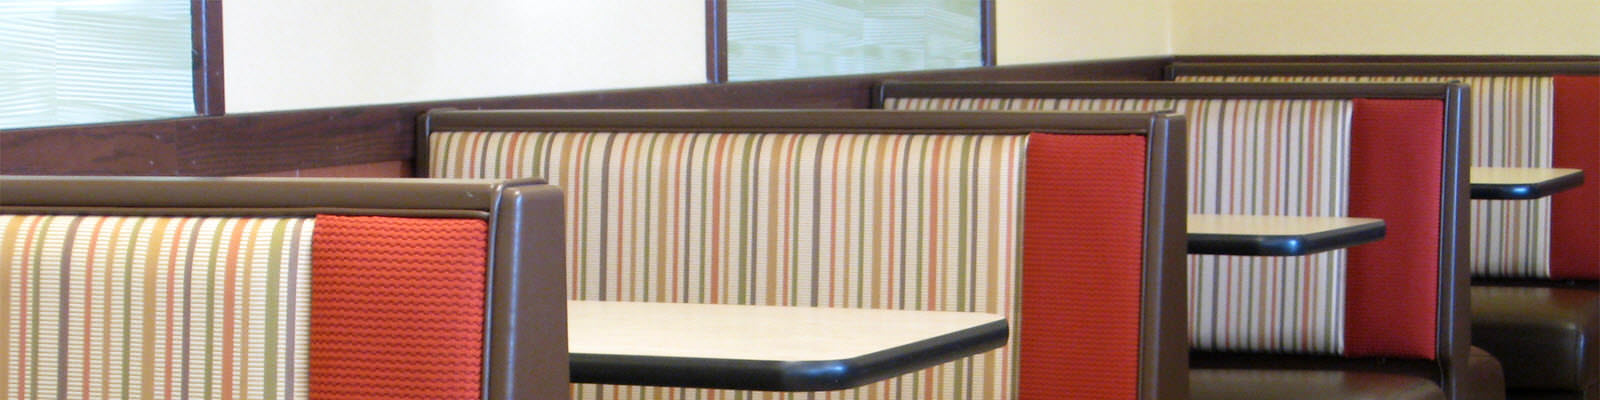 Diner booths and tables